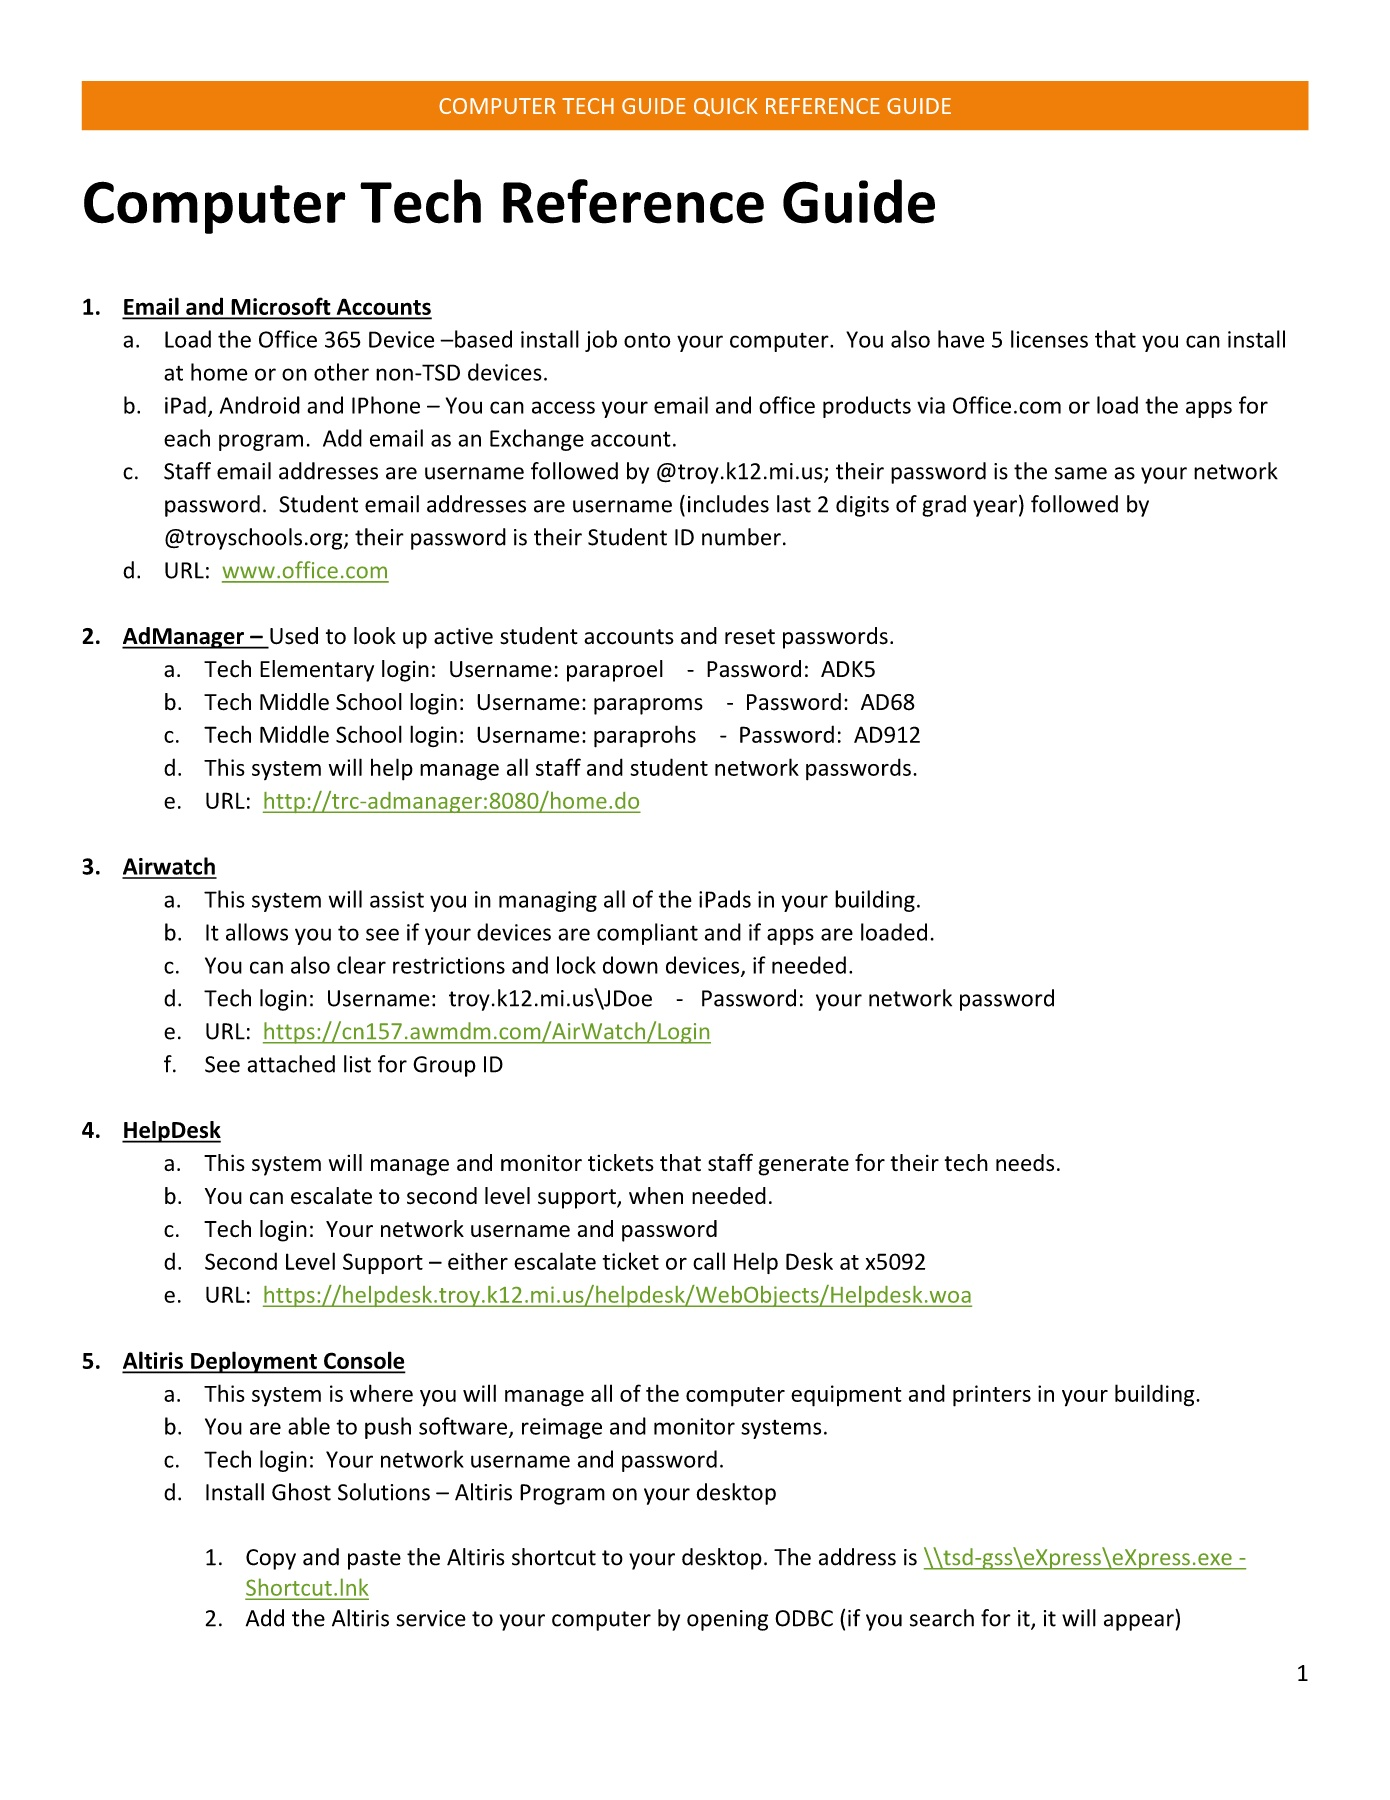 2017-2019 COMPUTER TECH GUIDE Pages 1 - 41 - Text Version | AnyFlip